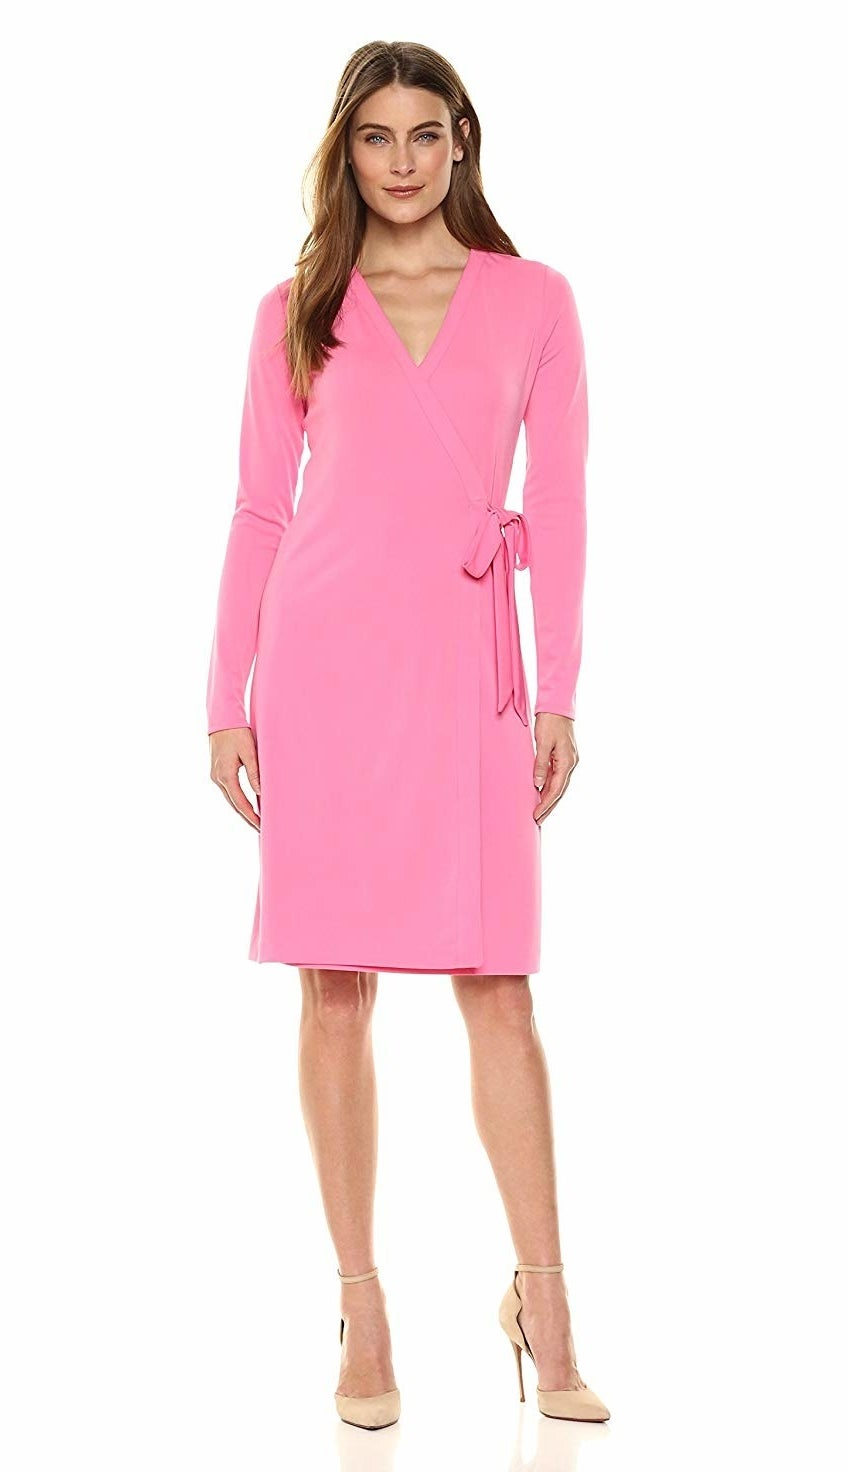 """This chic wardrobe staple is actually from one of Amazon's in-house fashion brands!Promising review: """"I have a Diane von Furstenberg wrap dress that I love and it cost me four times what this dress cost. I love this just as much and it's actually more flattering. It's well-made and looks great — you can't go wrong ordering this one!"""" —Coco LGet it from Amazon for $45 (available sizes XS-XL and in four colors and prints). Find it in plus sizes here."""